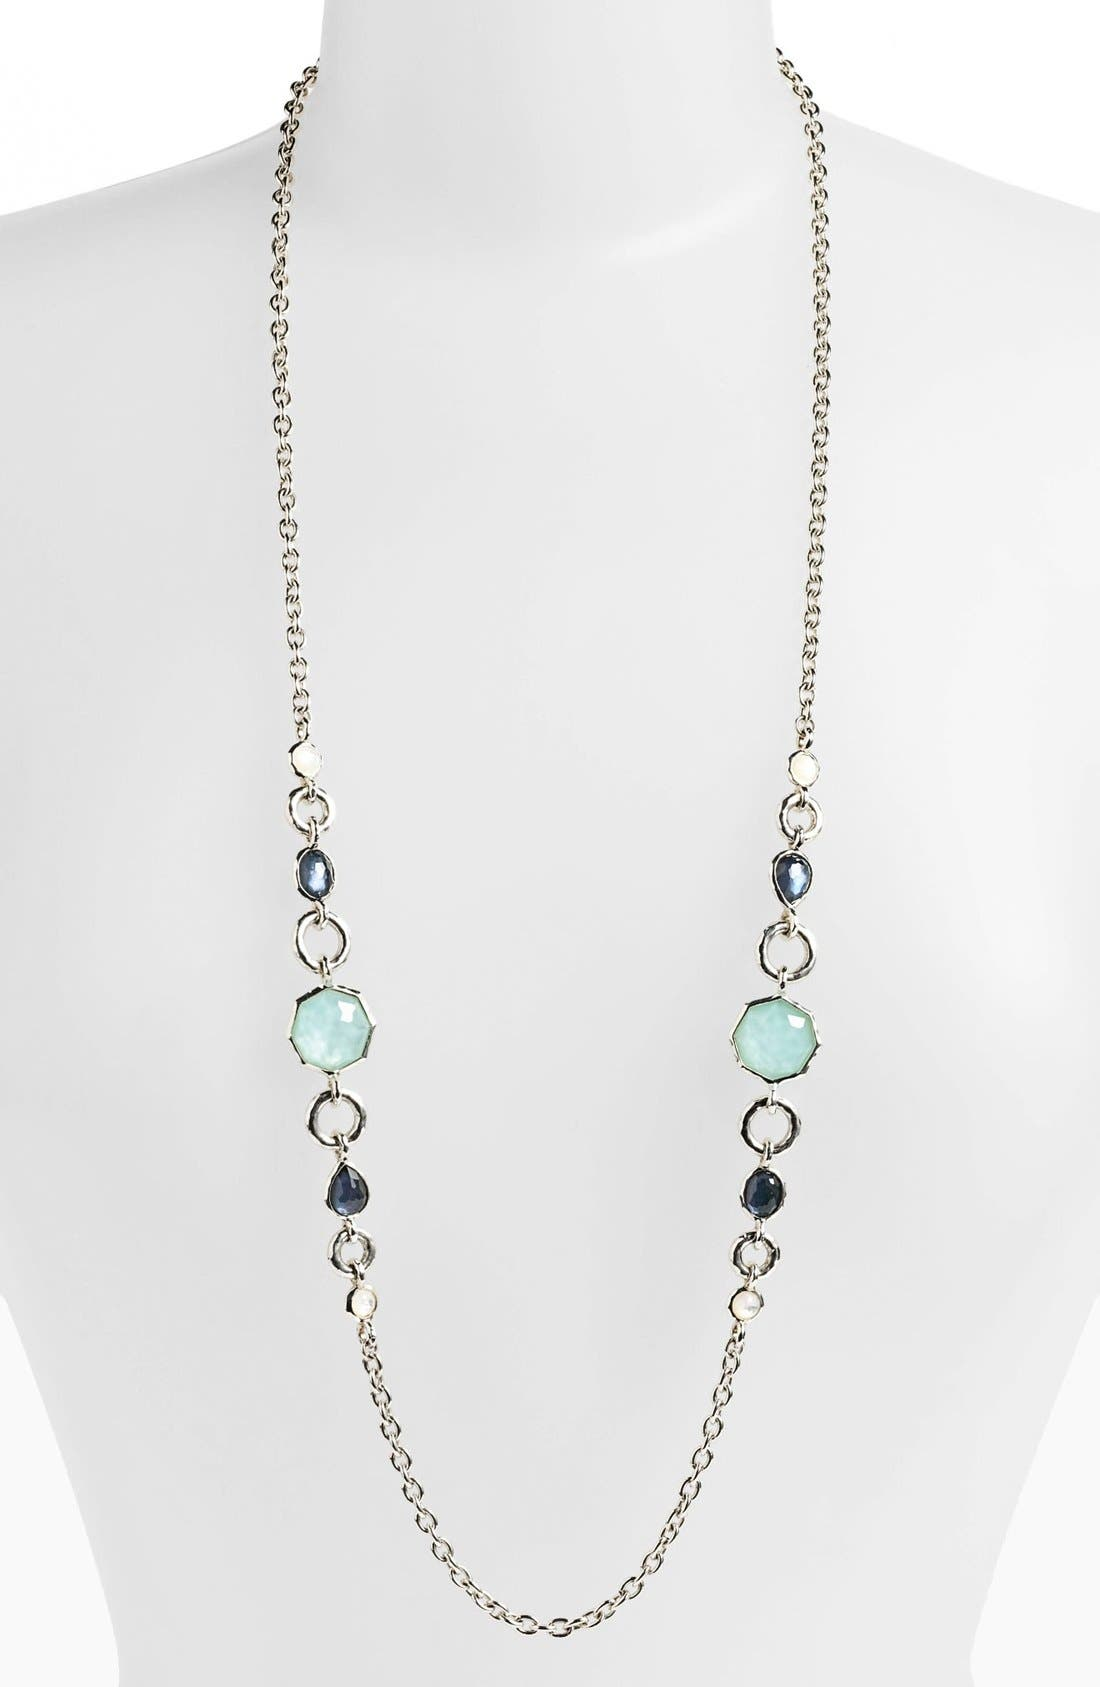 Main Image - Ippolita 'Wonderland' Long Station Necklace (Nordstrom Exclusive)